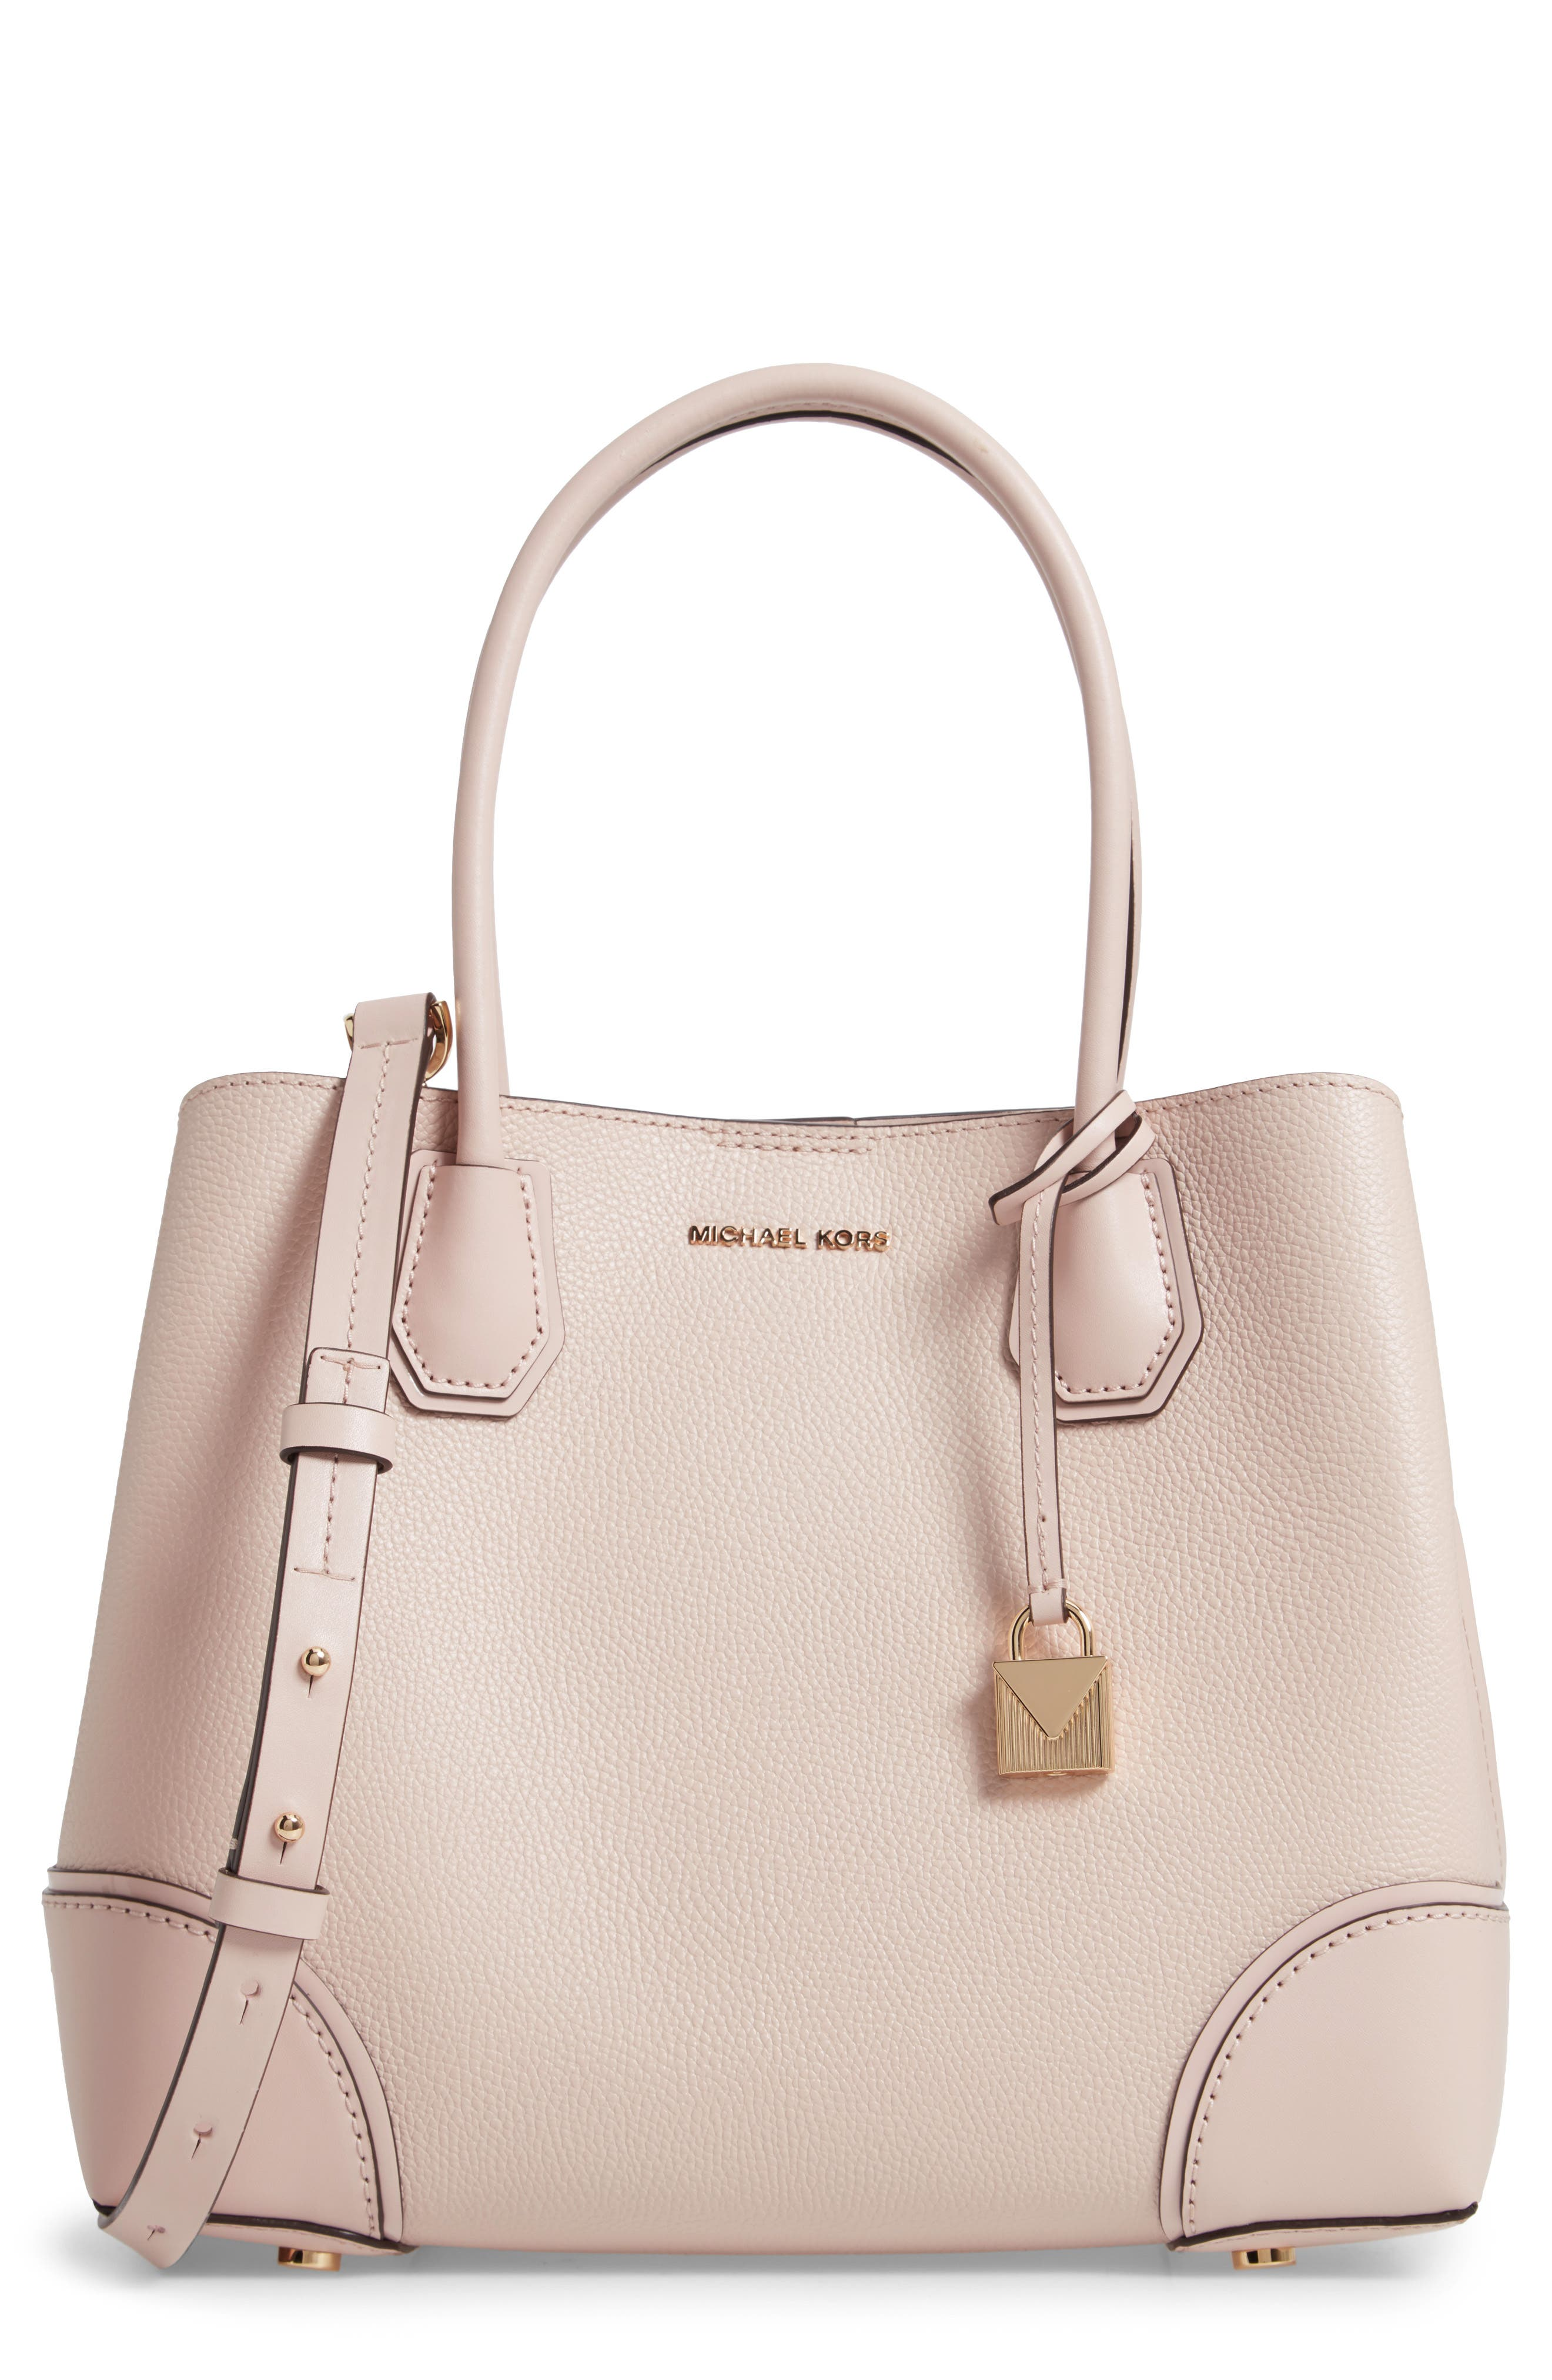 Medium Mercer Gallery Leather Satchel - Pink in Soft Pink